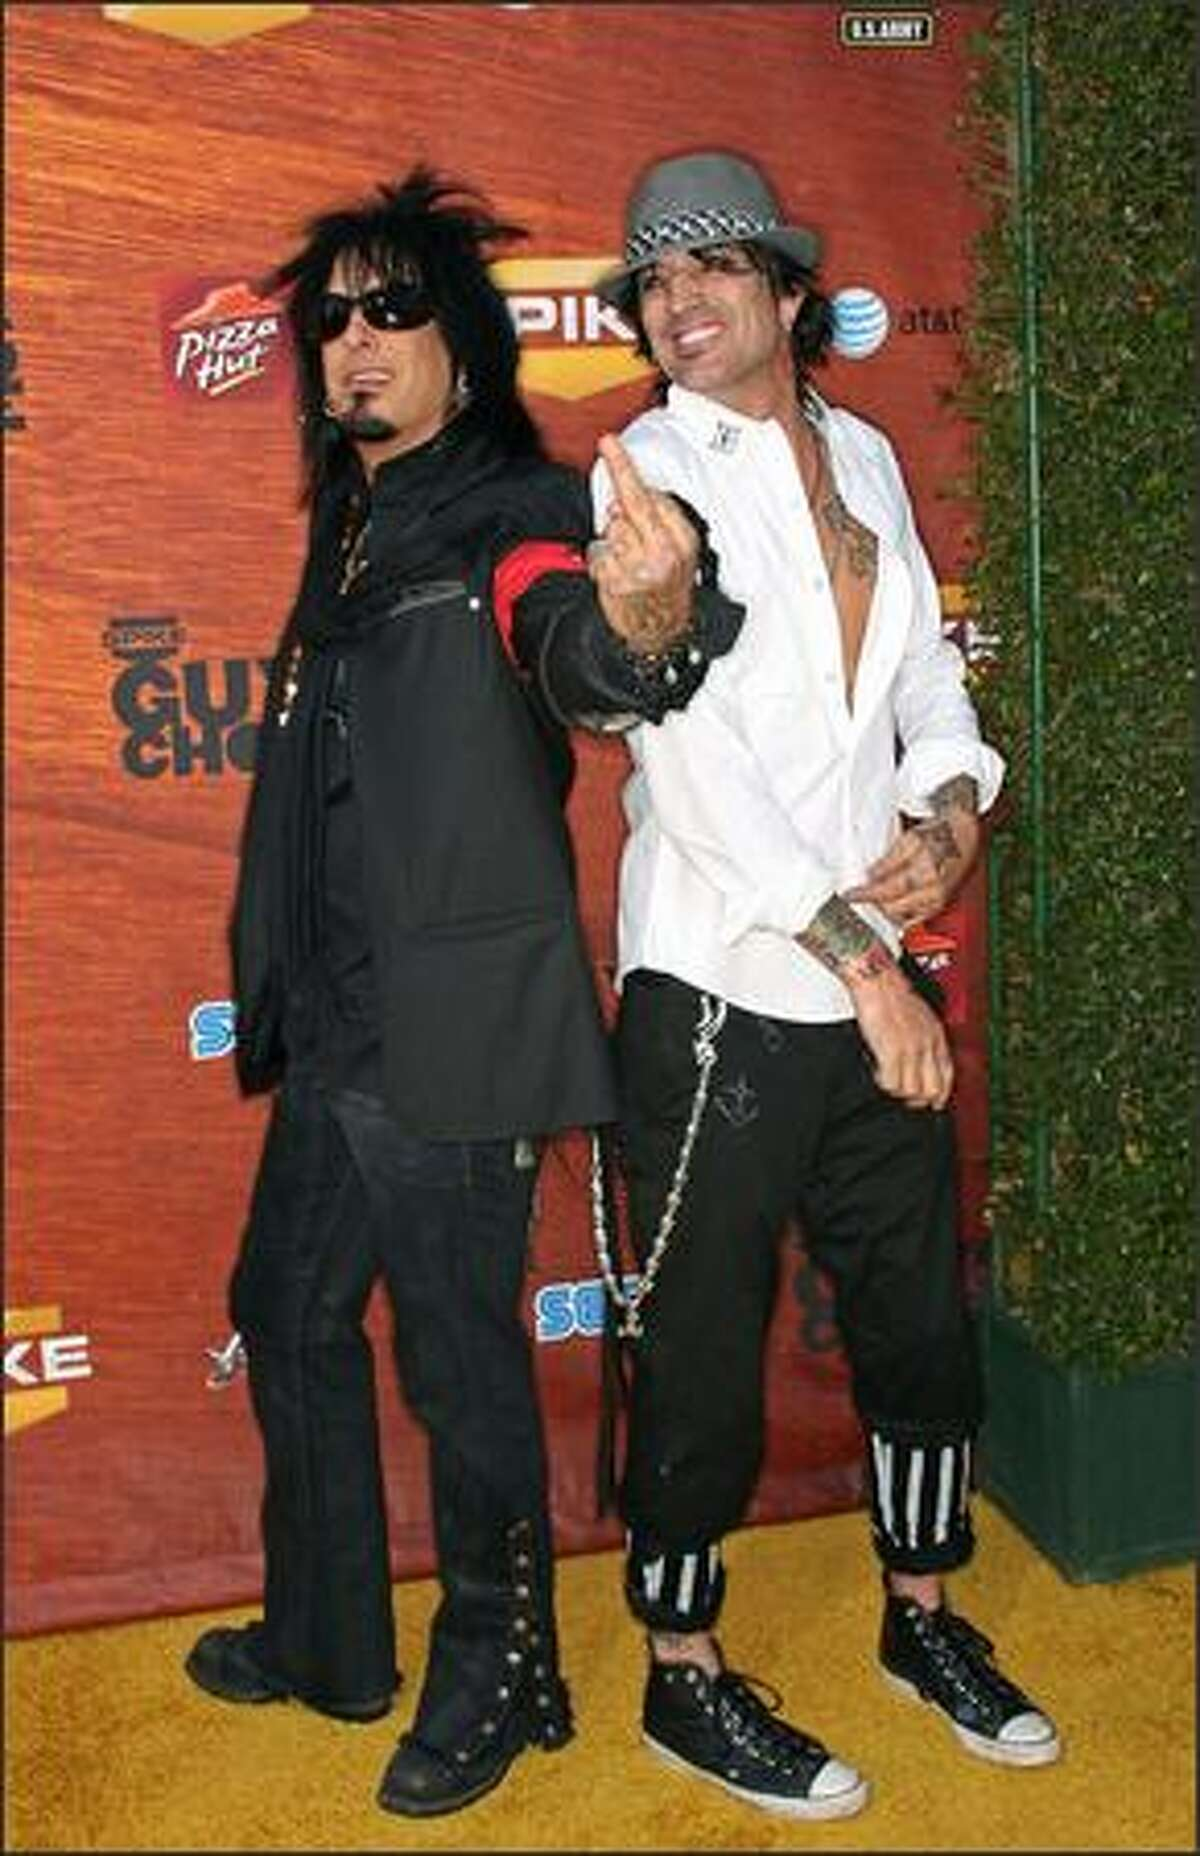 Musicians Nikki Sixx (left) and Tommy Lee arrive.